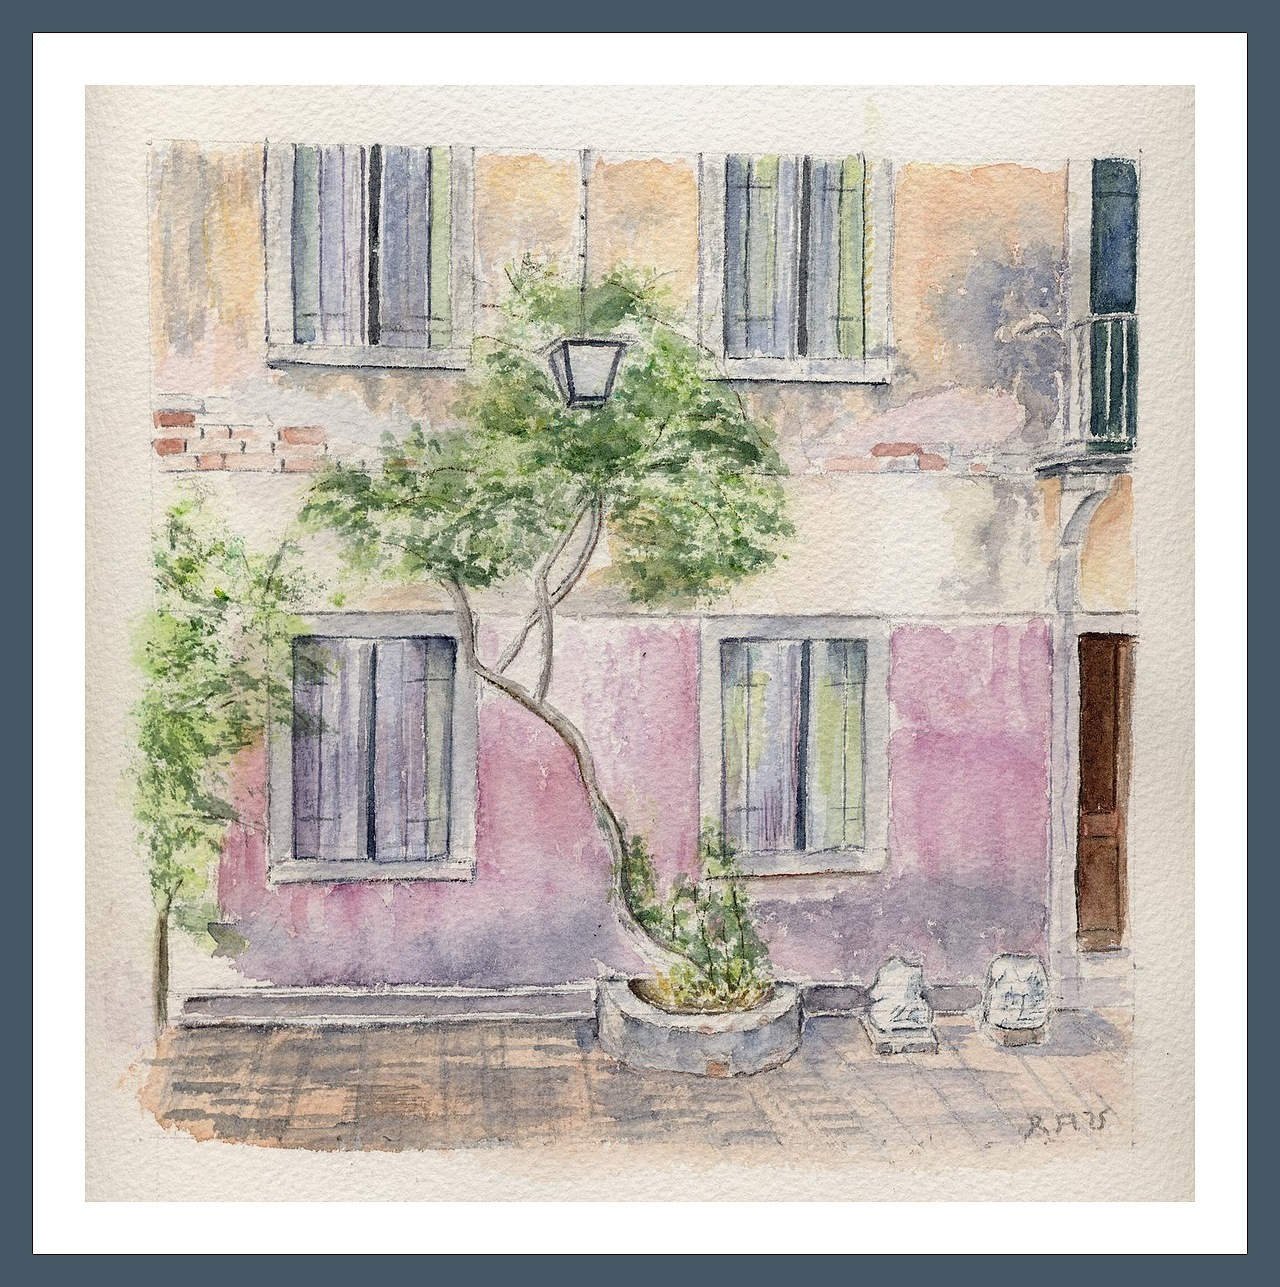 Torcello - Aquarelle copyright Christiane Rau 2015